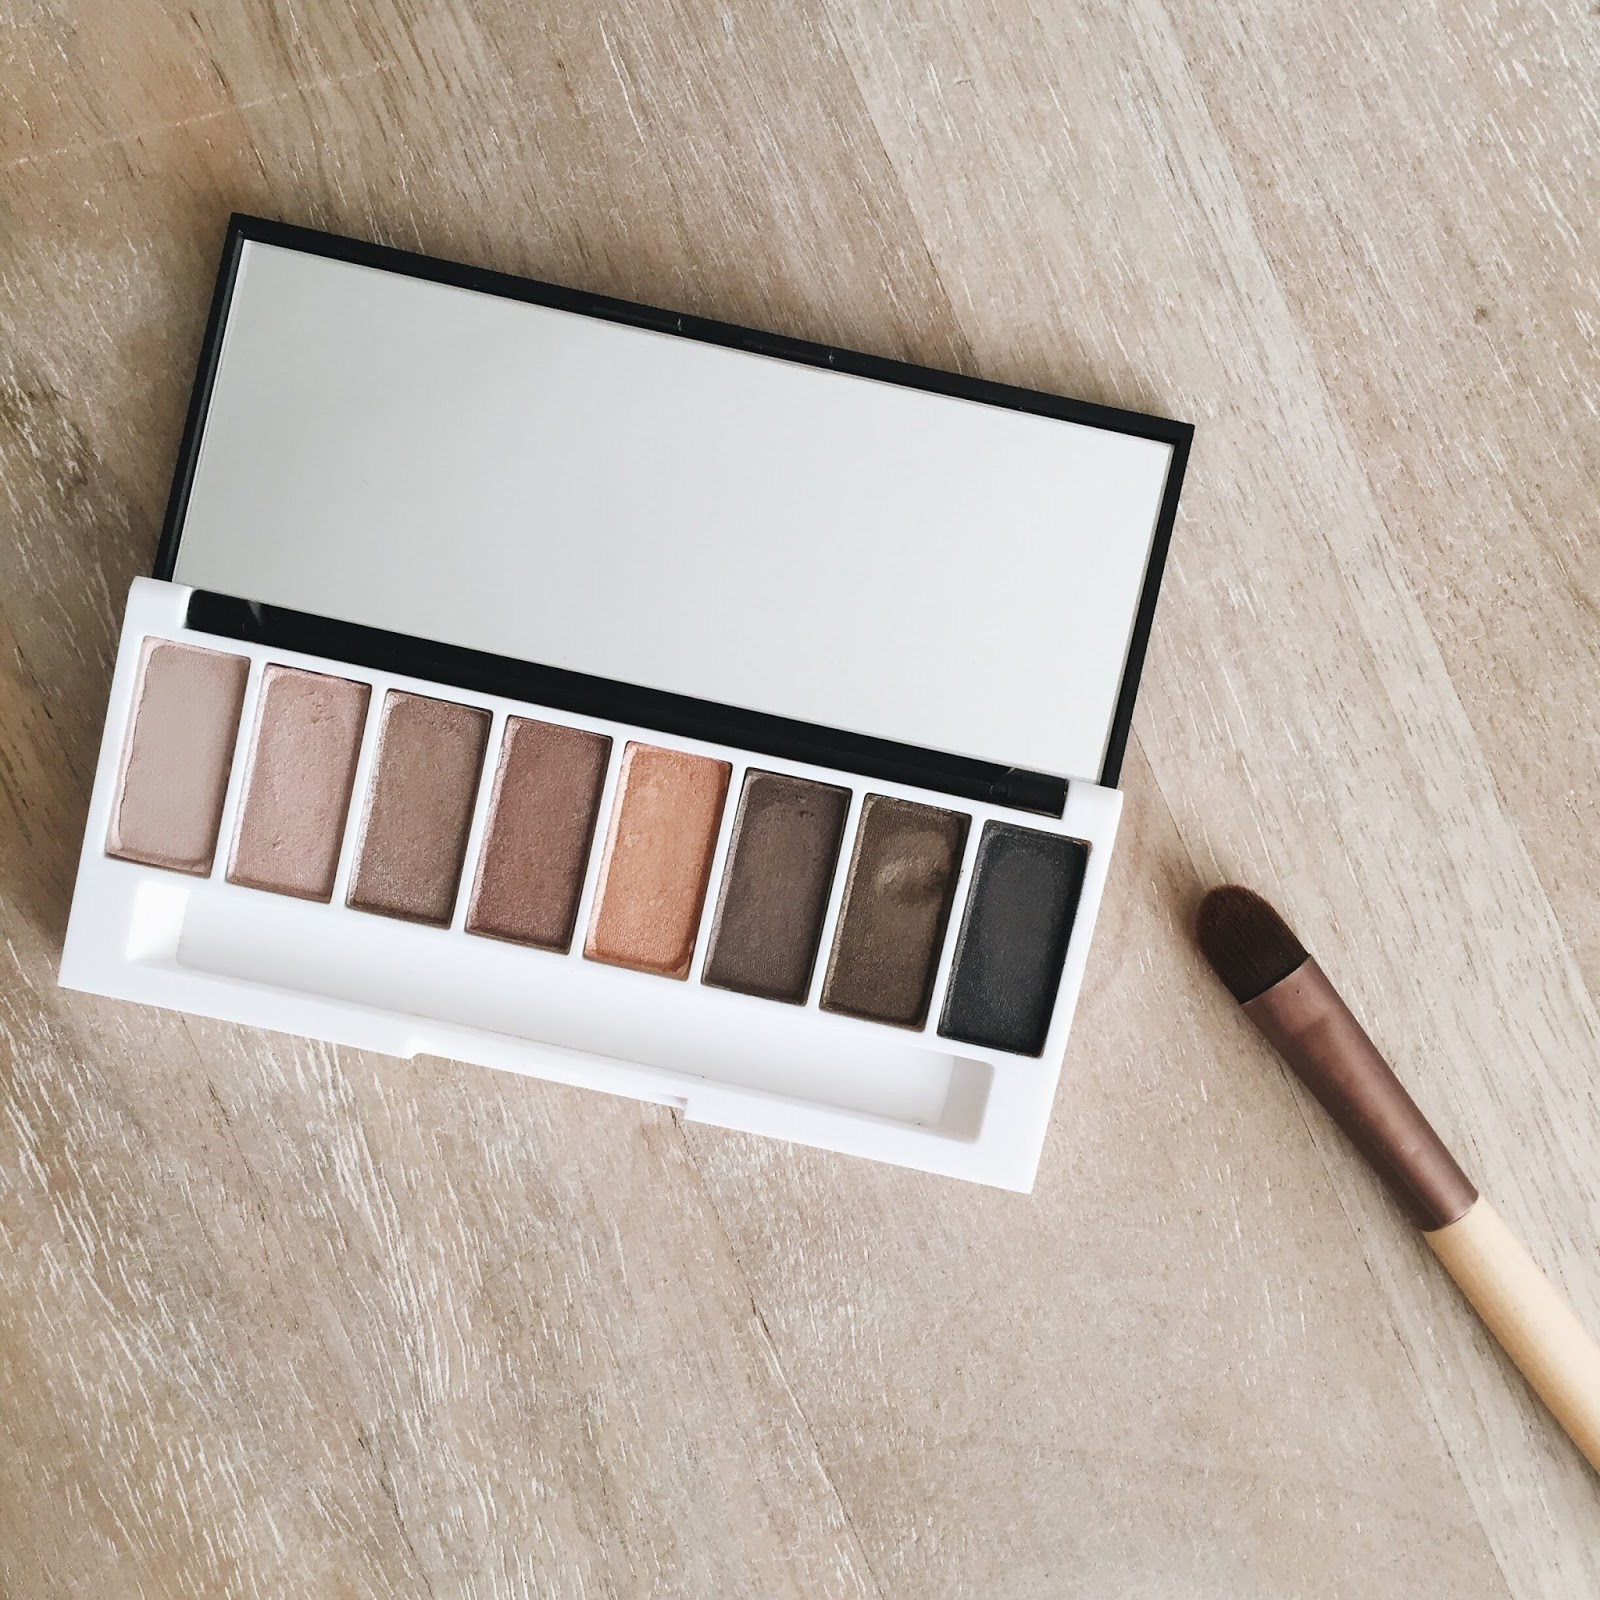 lily lolo laid bare eyeshadow palette review natural nontoxic organic hellolindasau